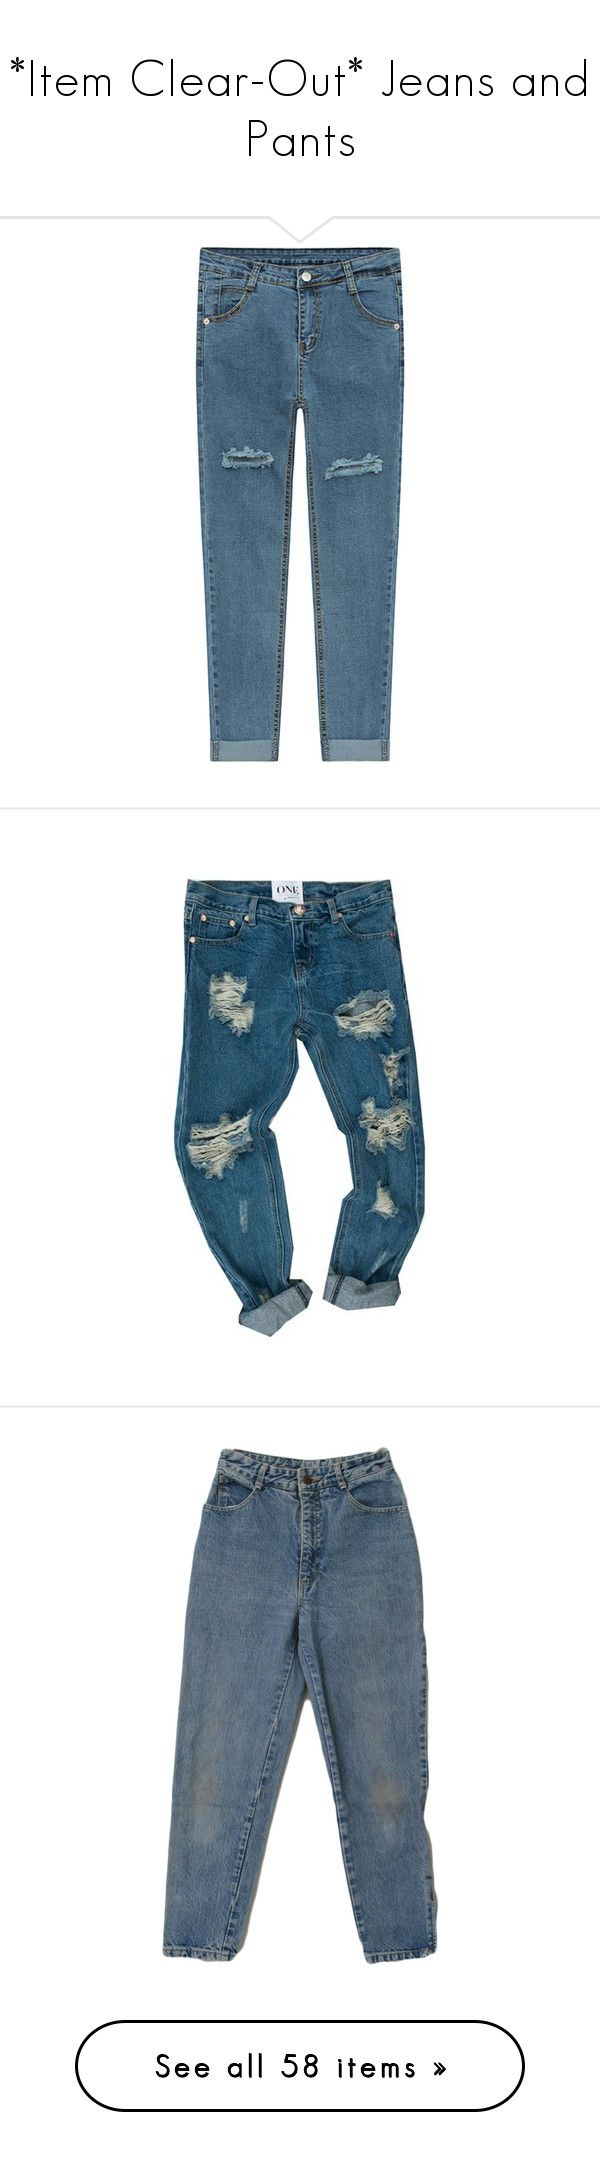 """""""*Item Clear-Out* Jeans and Pants"""" by so-devoid-of-colour ❤ liked on Polyvore featuring jeans, destroyed dark wash, boyfriend fit jeans, destructed boyfriend jeans, rolled up jeans, dark wash boyfriend jeans, torn boyfriend jeans, pants, bottoms and trousers"""